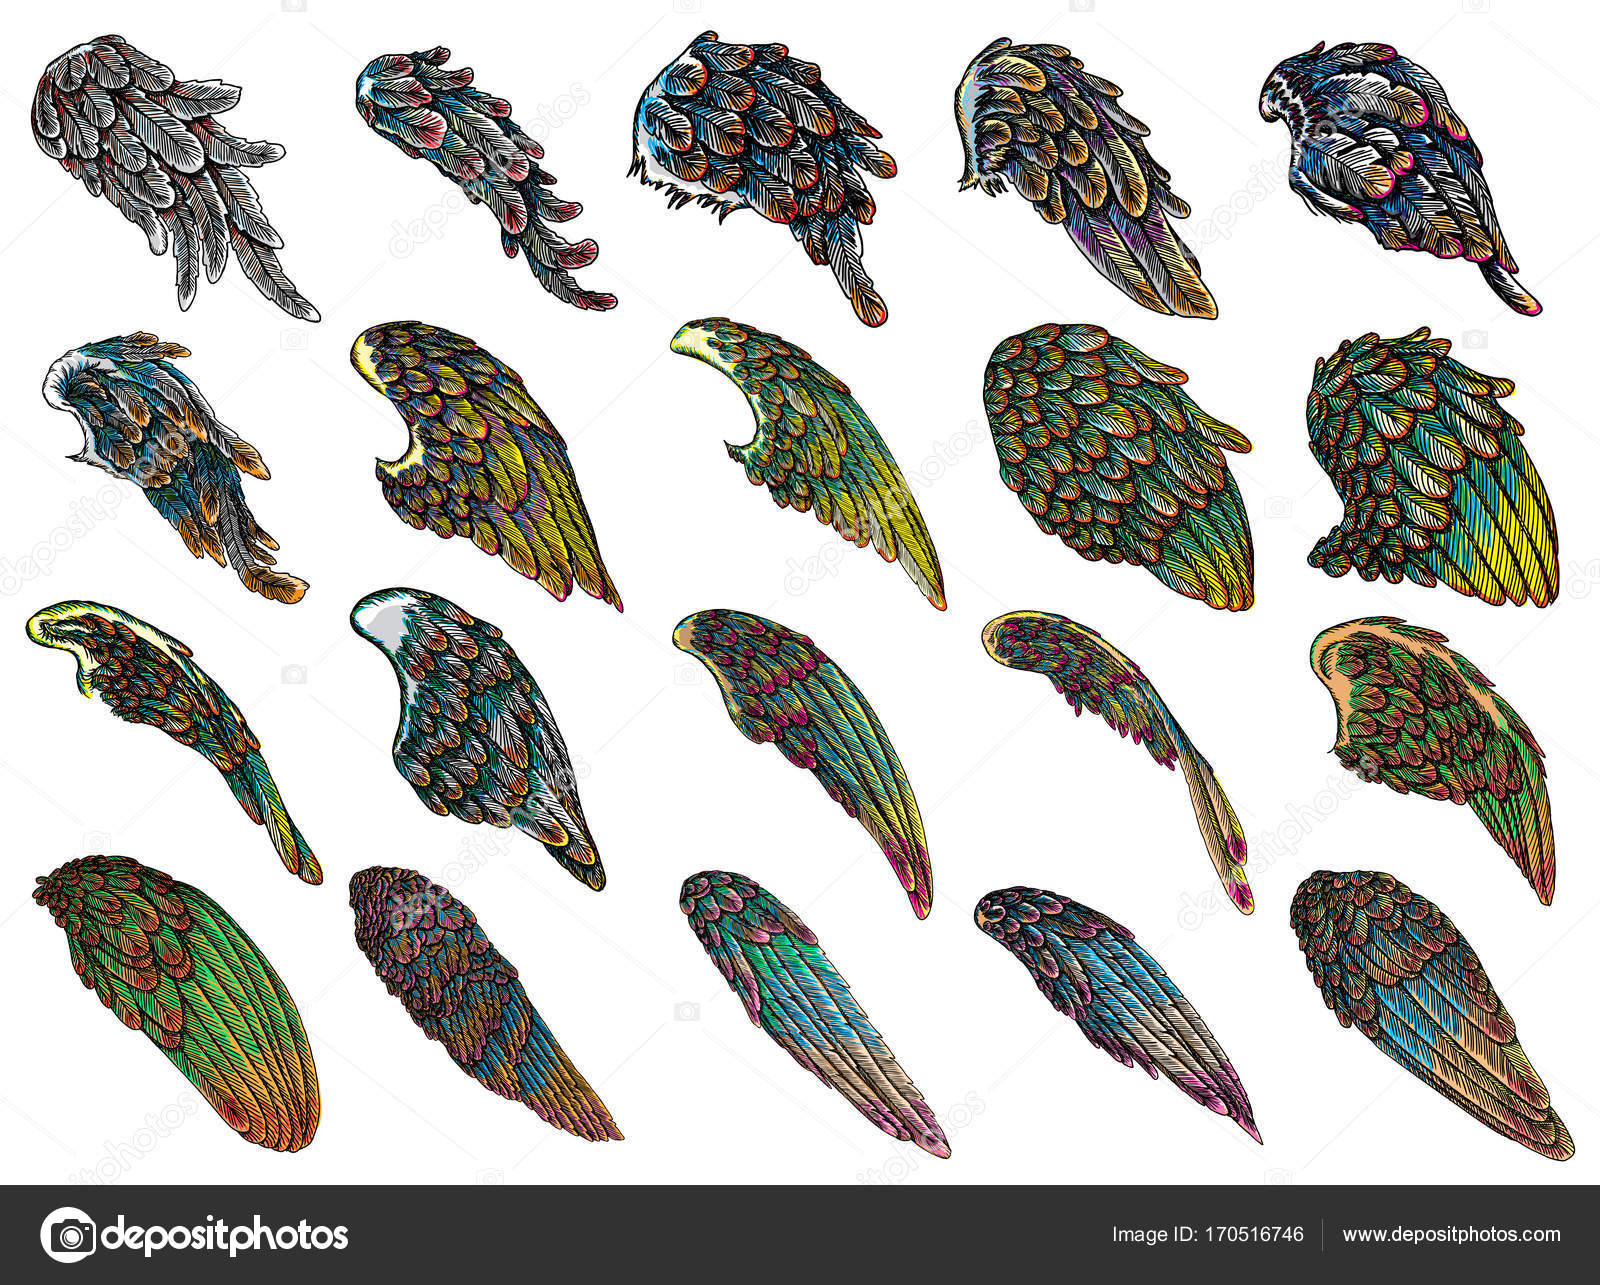 4b5d8ea1d Set of angel or bird colourful wings. Colorful abstract hand drawing sketch,  isolated illustration. Woodcut vintage style wings, hipster tattoo or  vintage ...